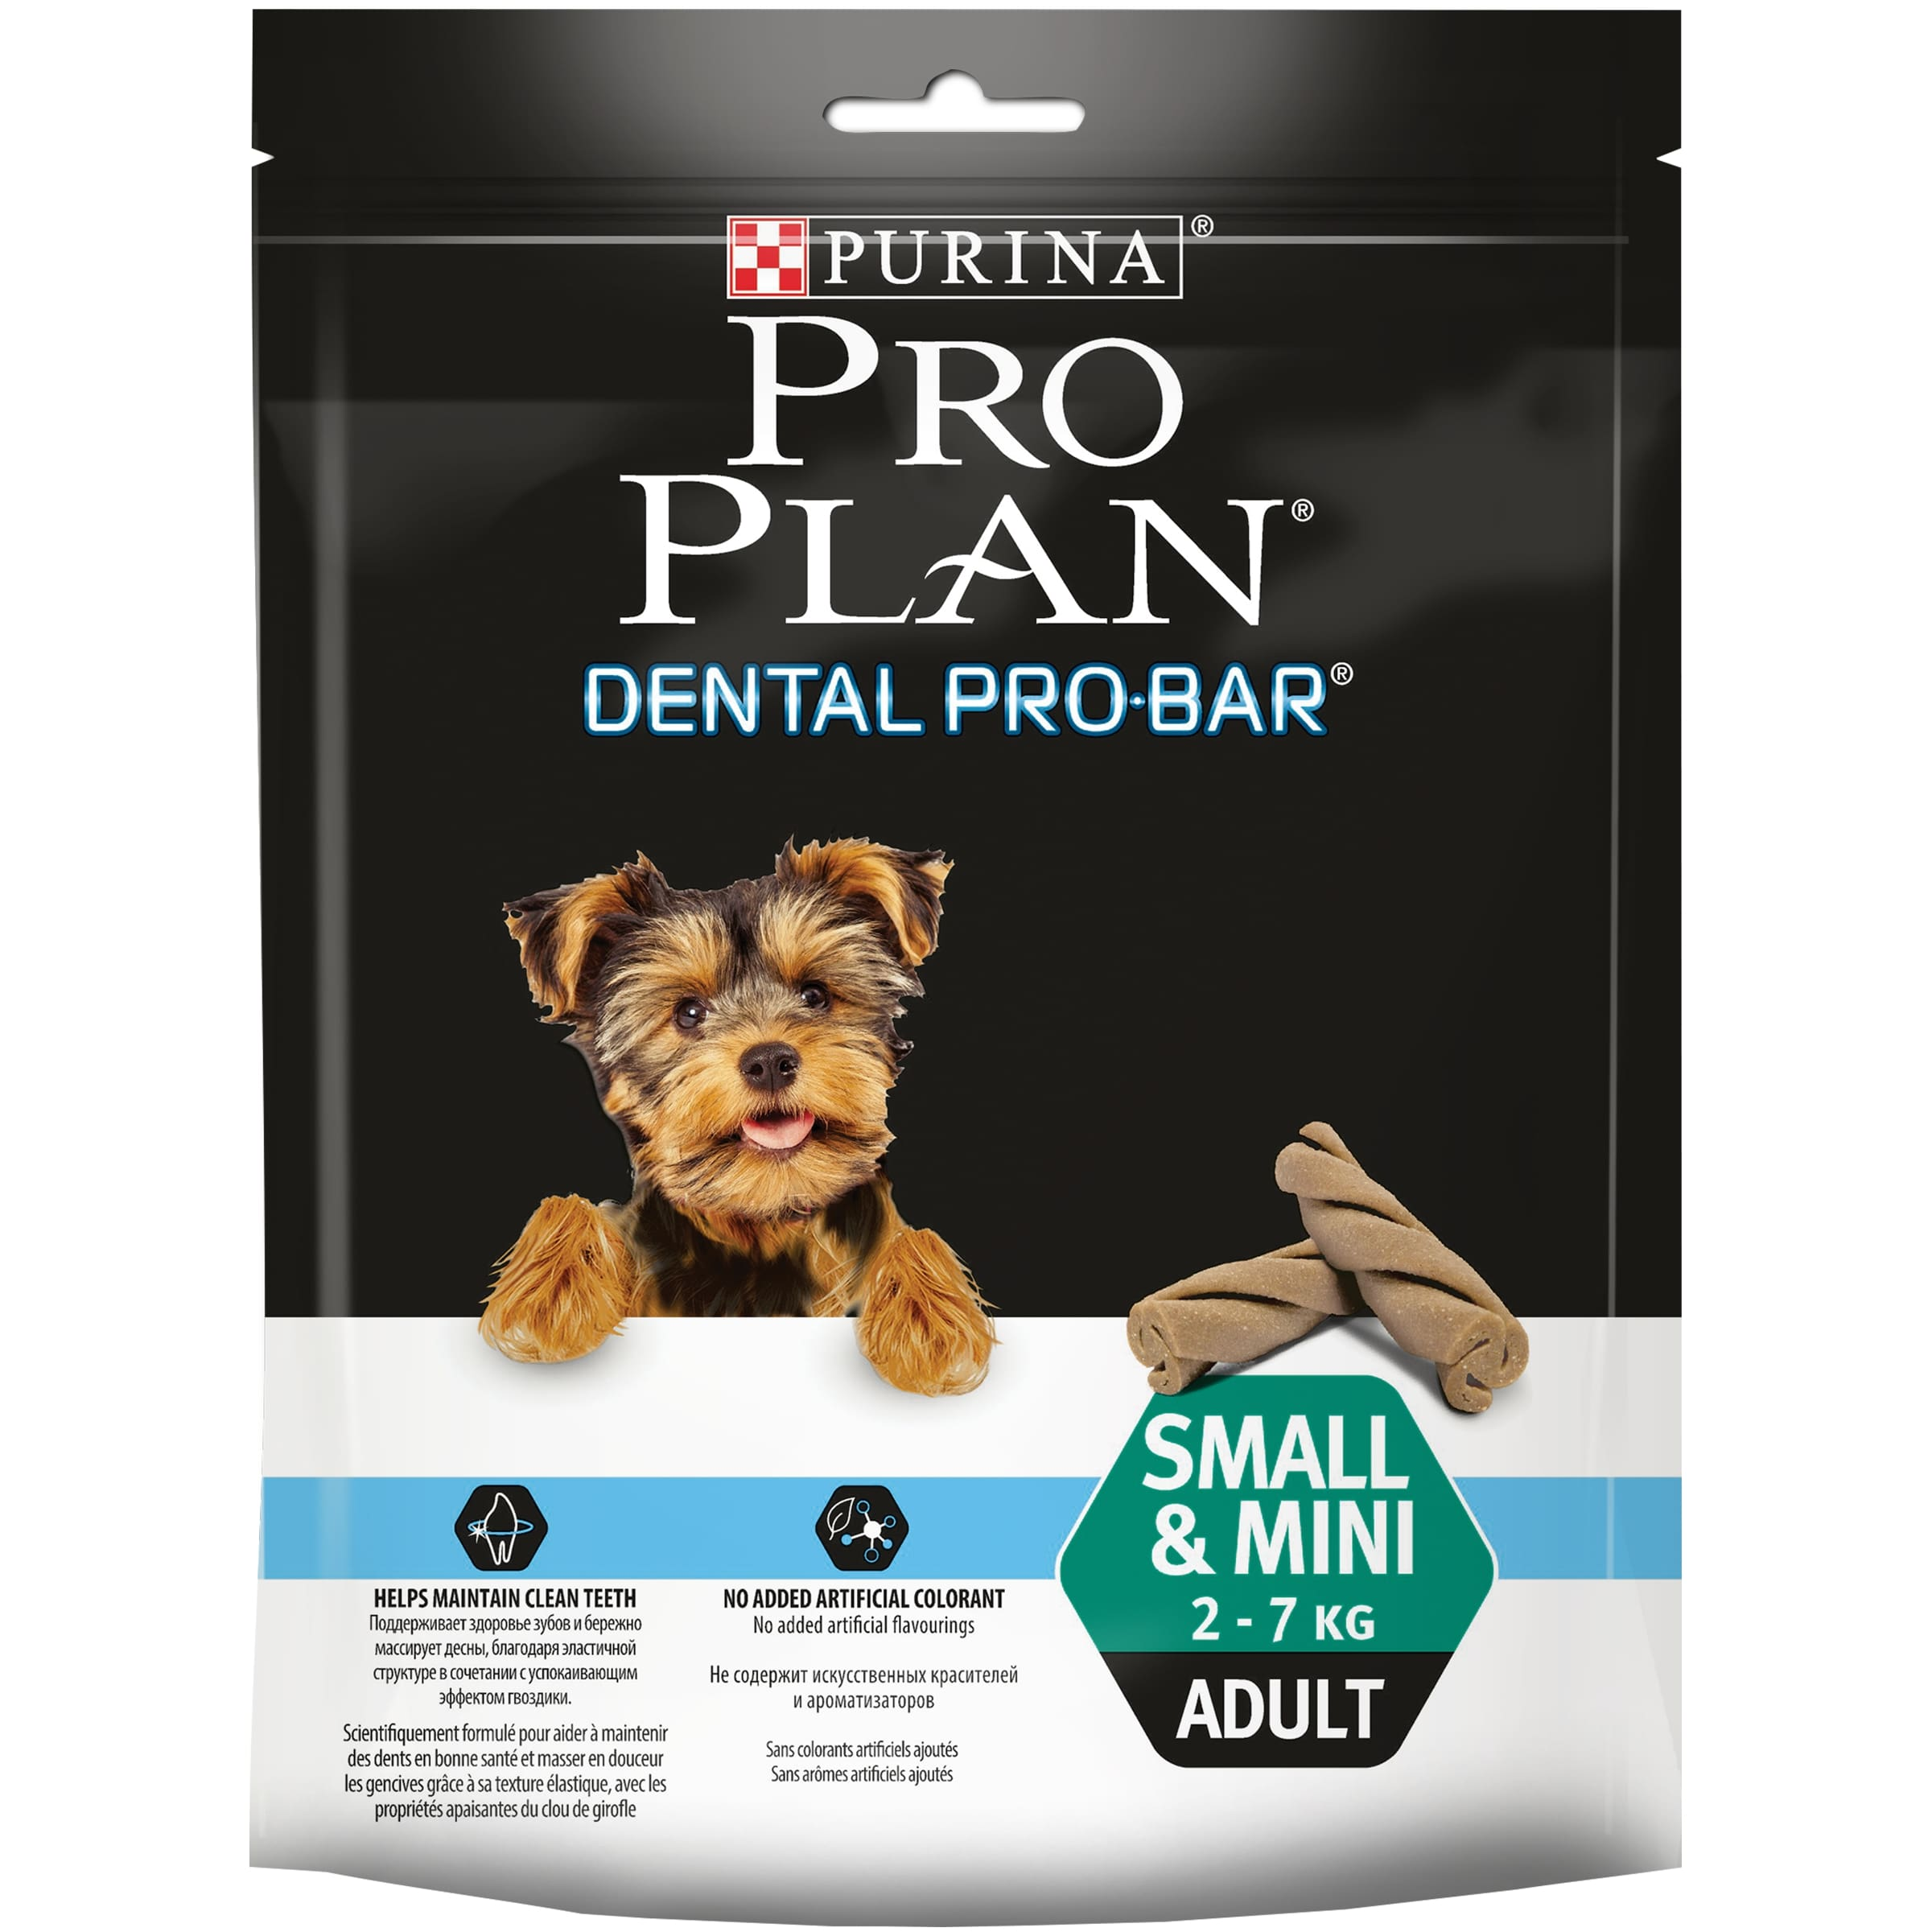 PRO PLAN Dental Pro Bar S & M delicacy set for maintaining oral health of dogs of small and dwarf breeds, 150 gx 6 pcs.